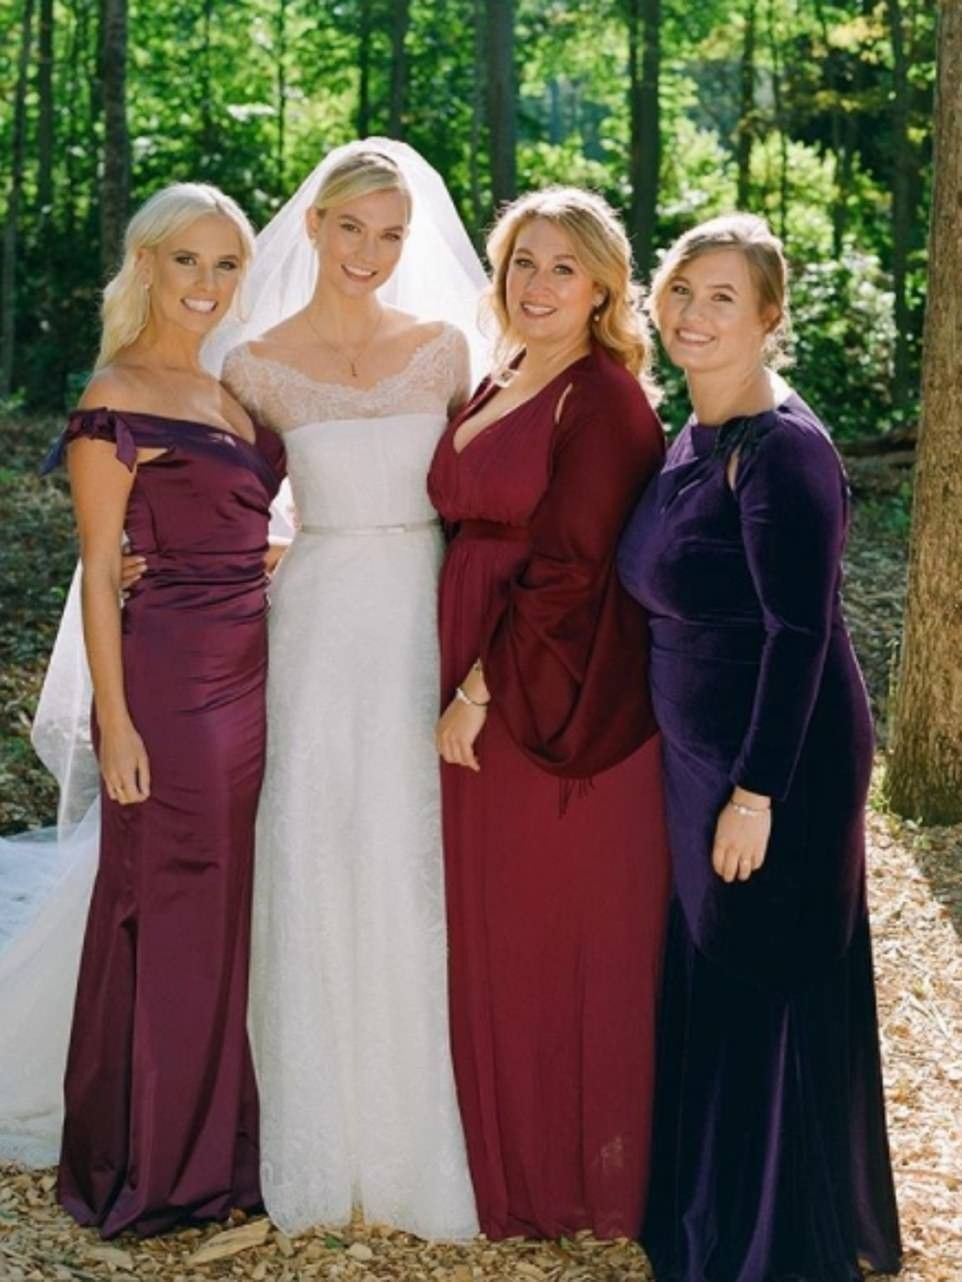 Karlie Kloss And Bridesmaids Dior Wedding Dresses Celebrity